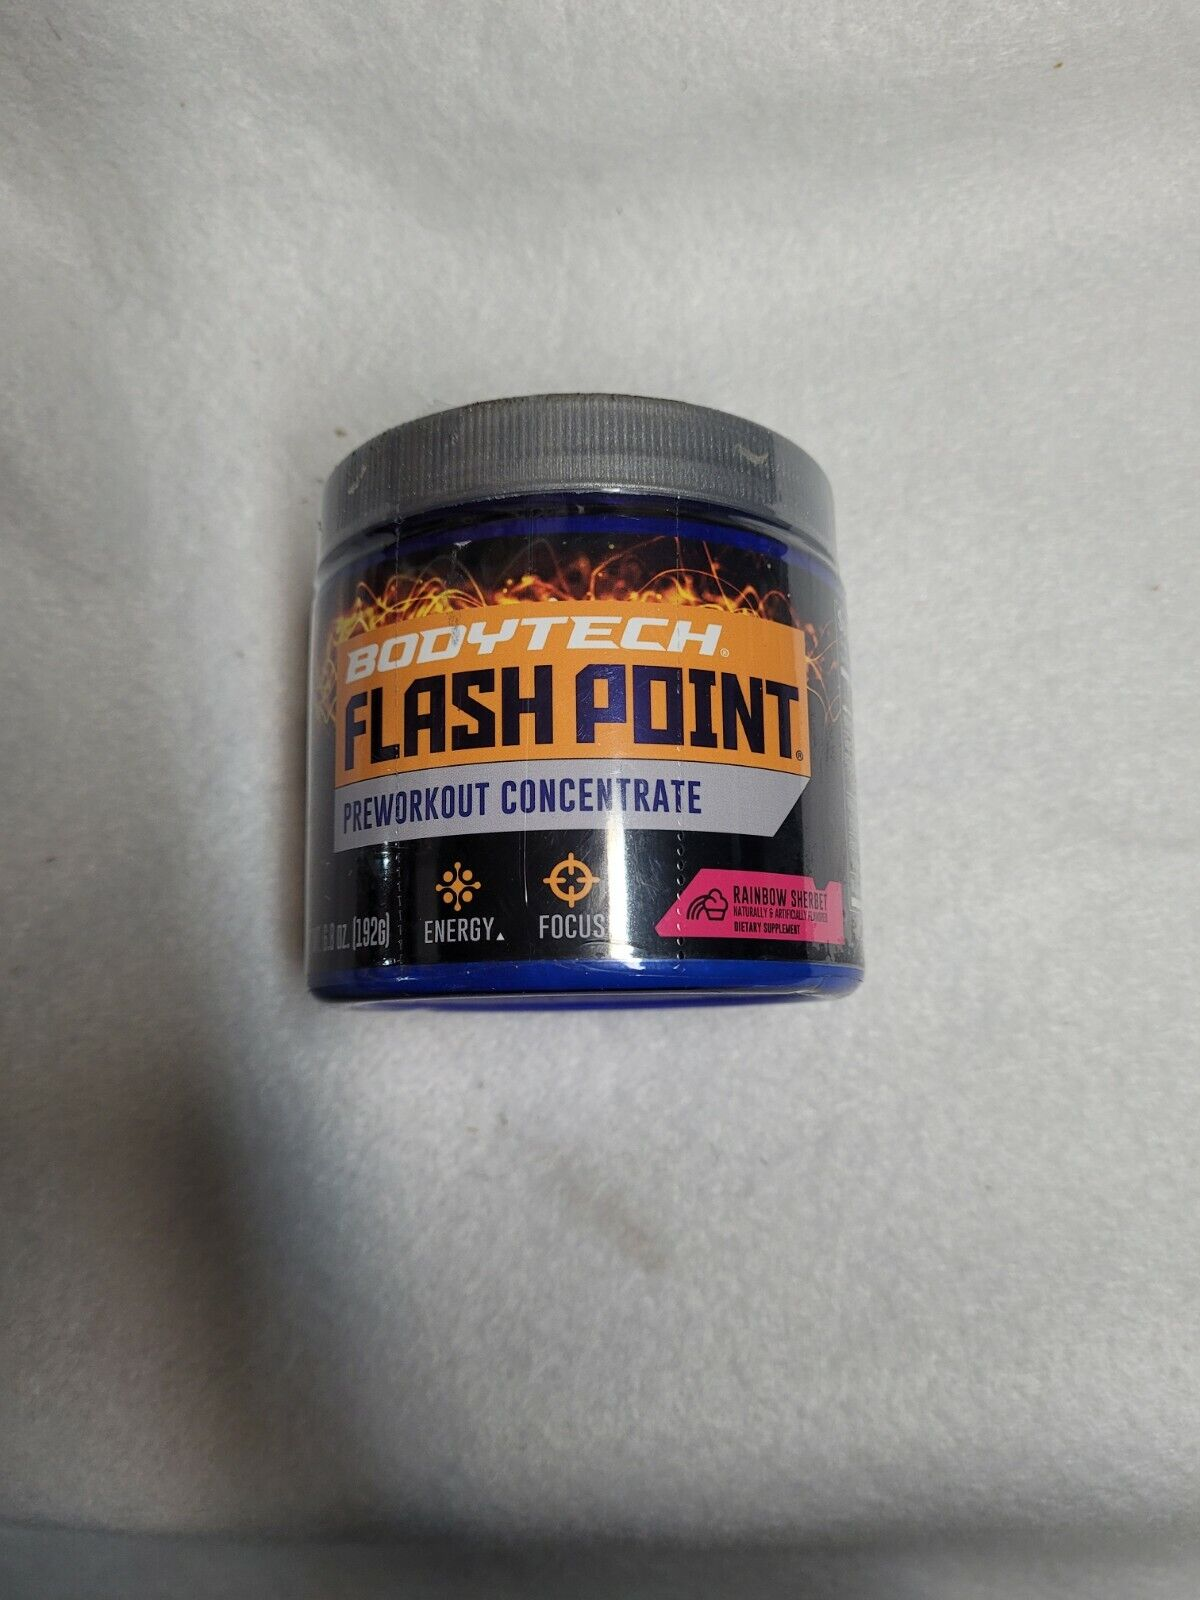 Flashpoint Pre Workout : flashpoint, workout, BodyTech, Flash, Point, Workout, Concentrate, Fruit, Punch, Flavor, Online